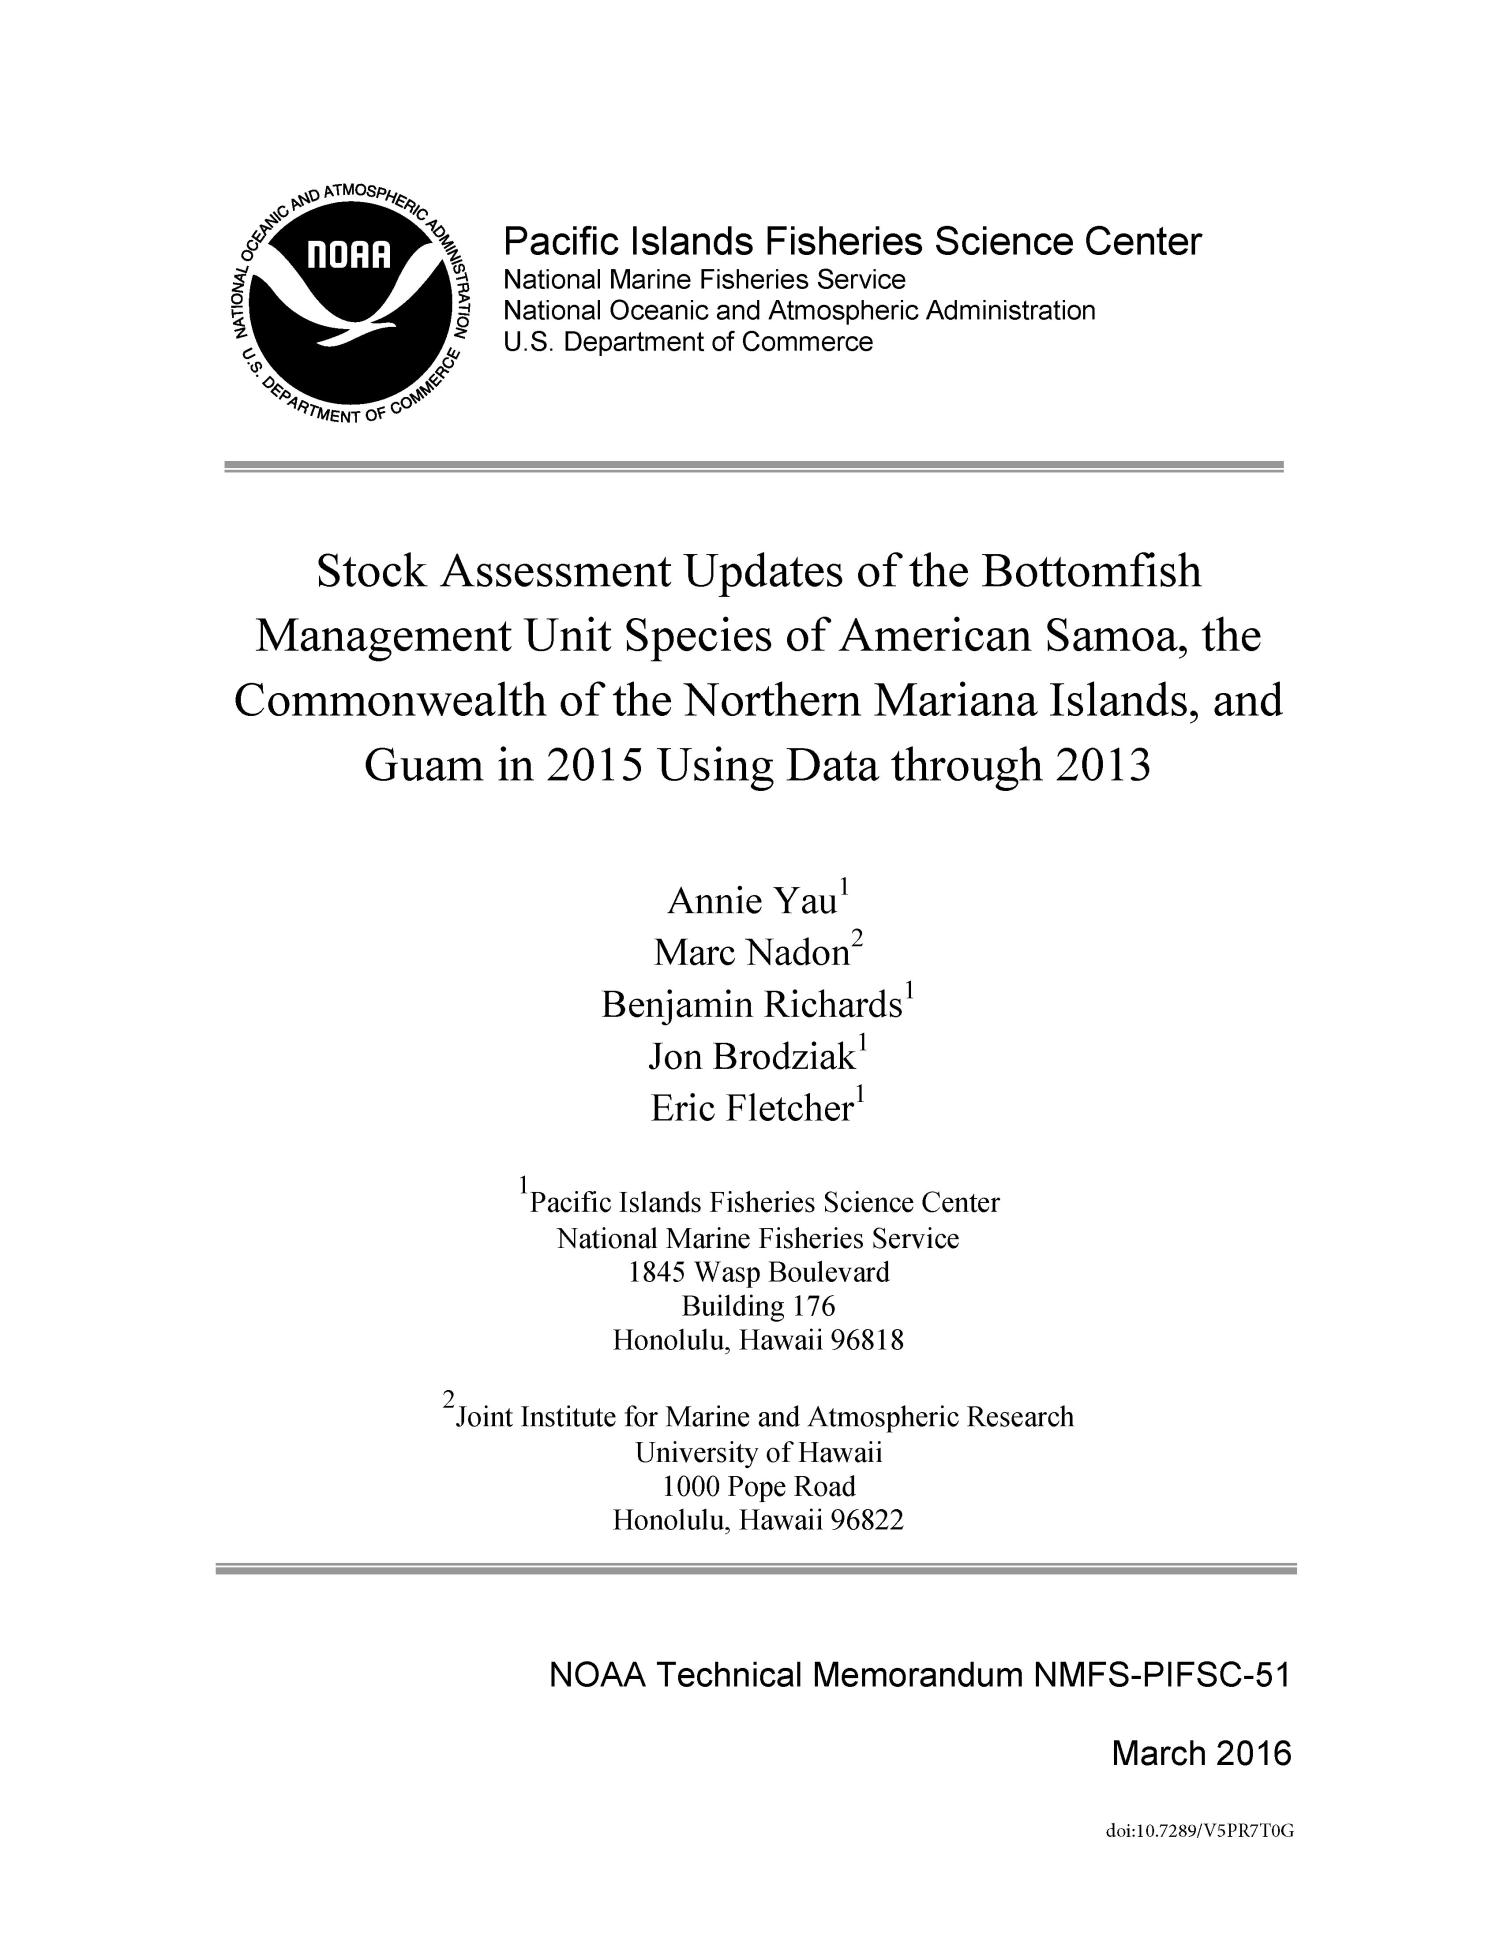 Stock Assessment Updates if the Bottomfish Management Unit Species of American Samoa, the Commonwealth of the Northern Mariana Islands, and Guam in 2015 Data through 2013                                                                                                      Title Page